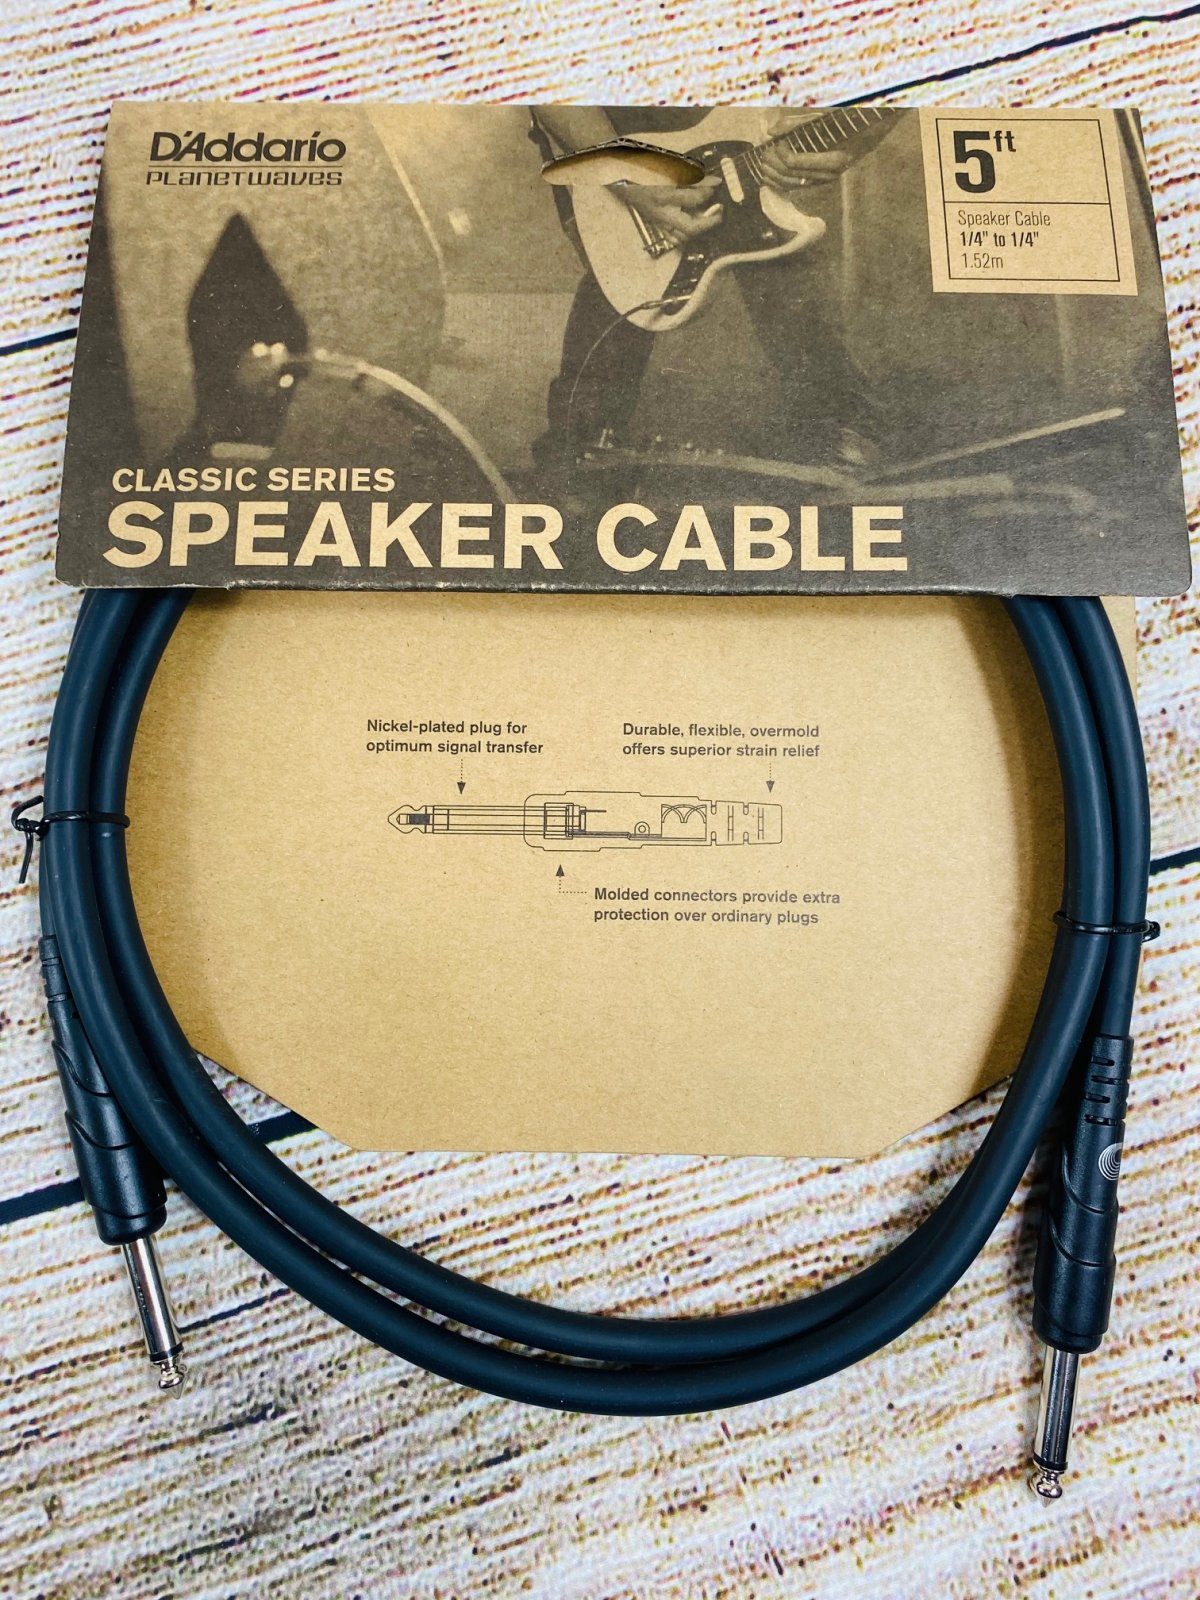 D'Addario Classic Series Speaker Cables - 5 foot